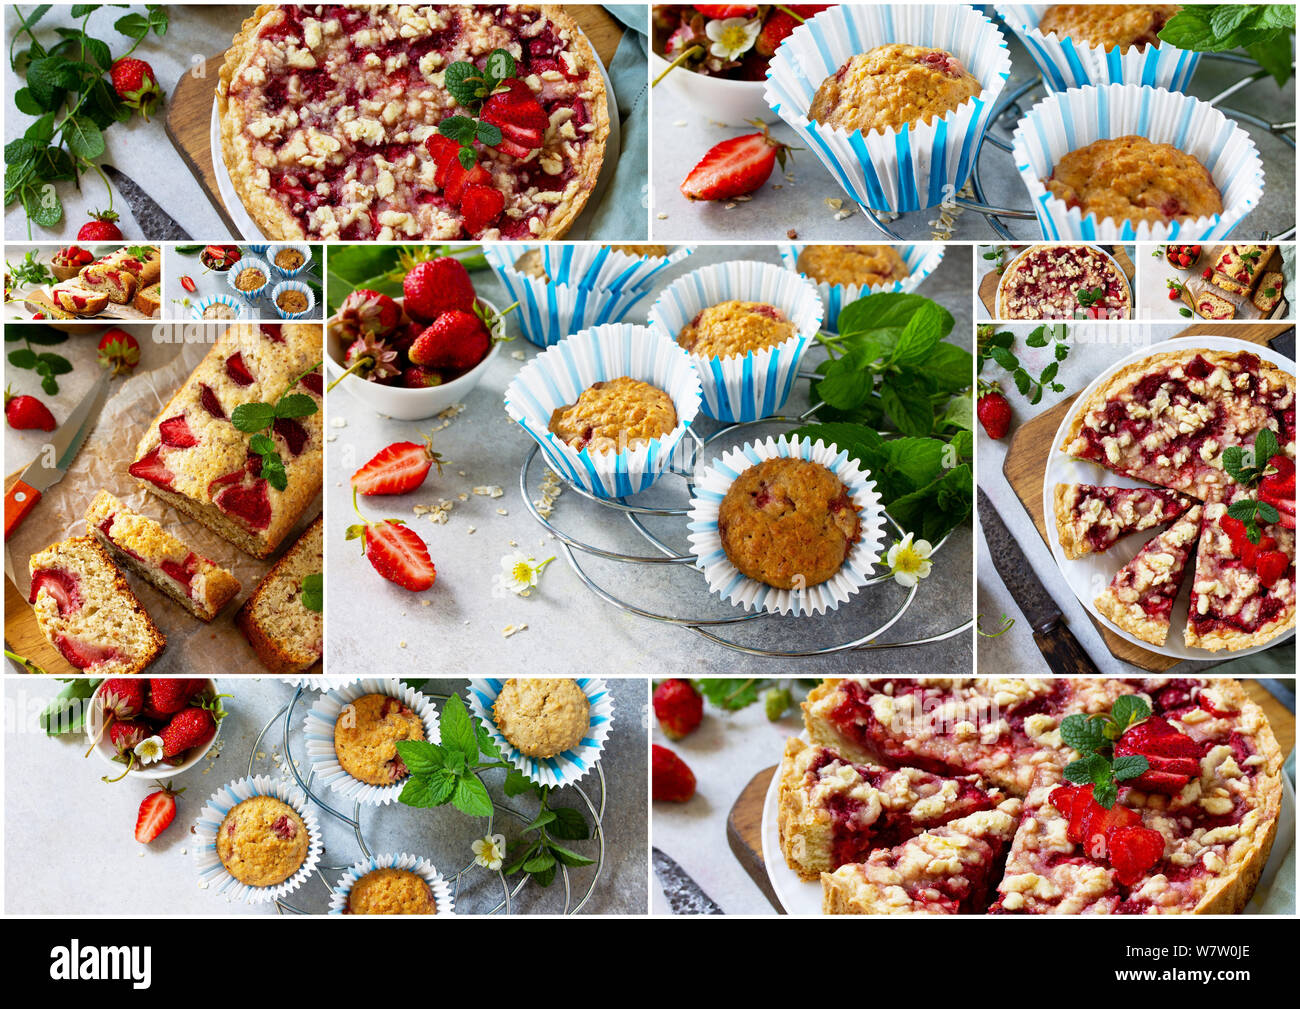 Collage summer baking. Strawberry pastries - cake, pie and muffins on a stone table. Stock Photo